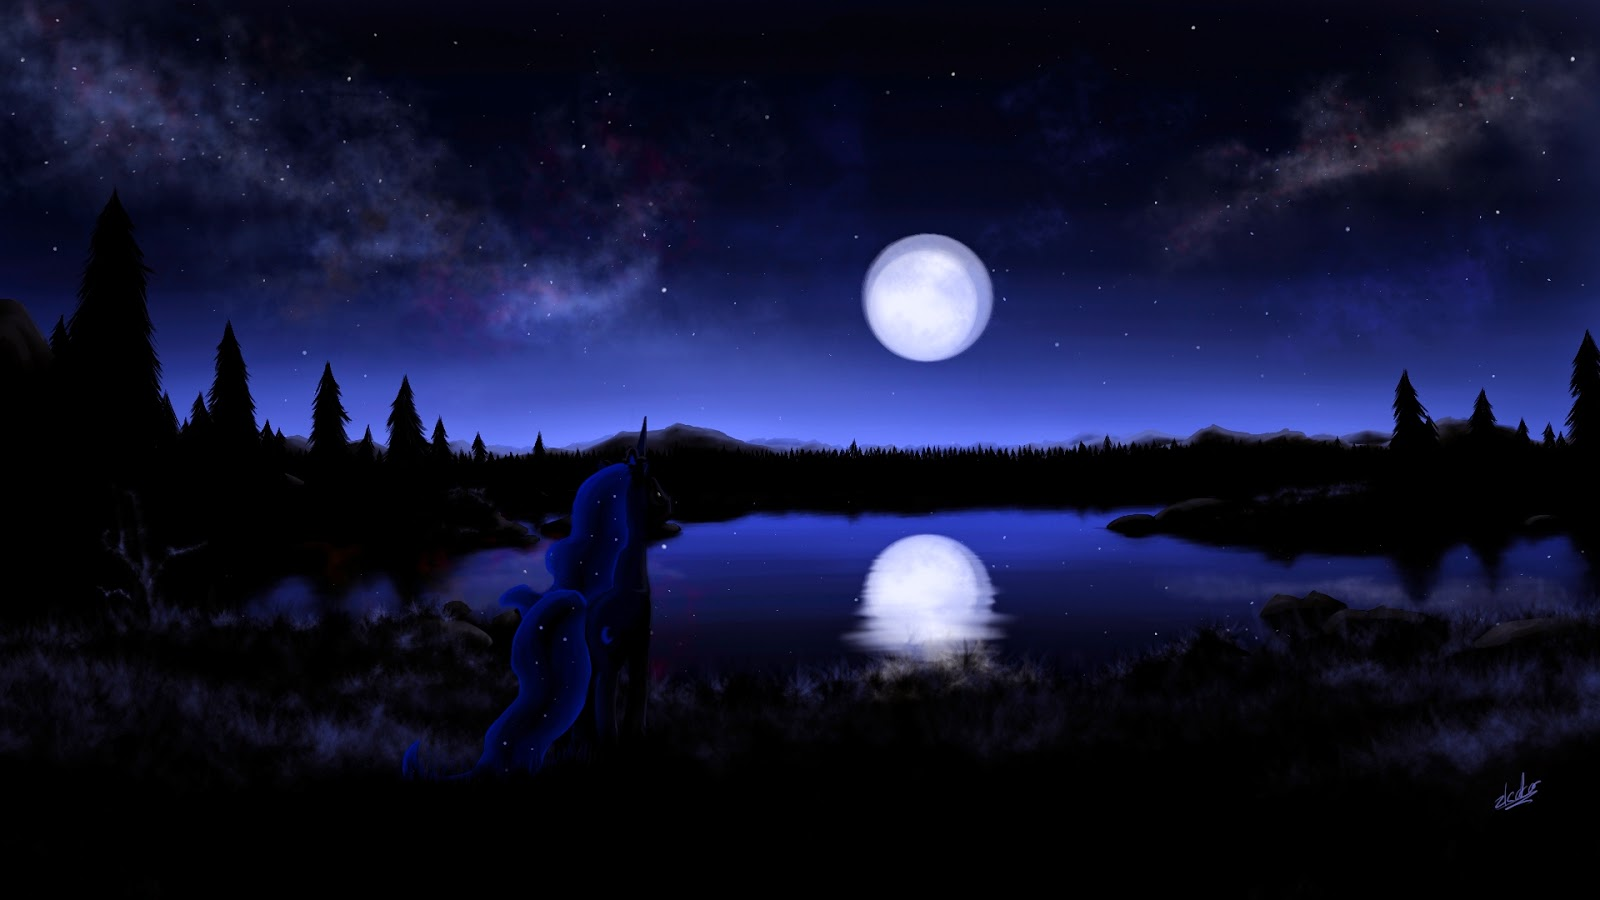 Dark-theme-night-art-beauty-of-night-moon-HD-image.jpg